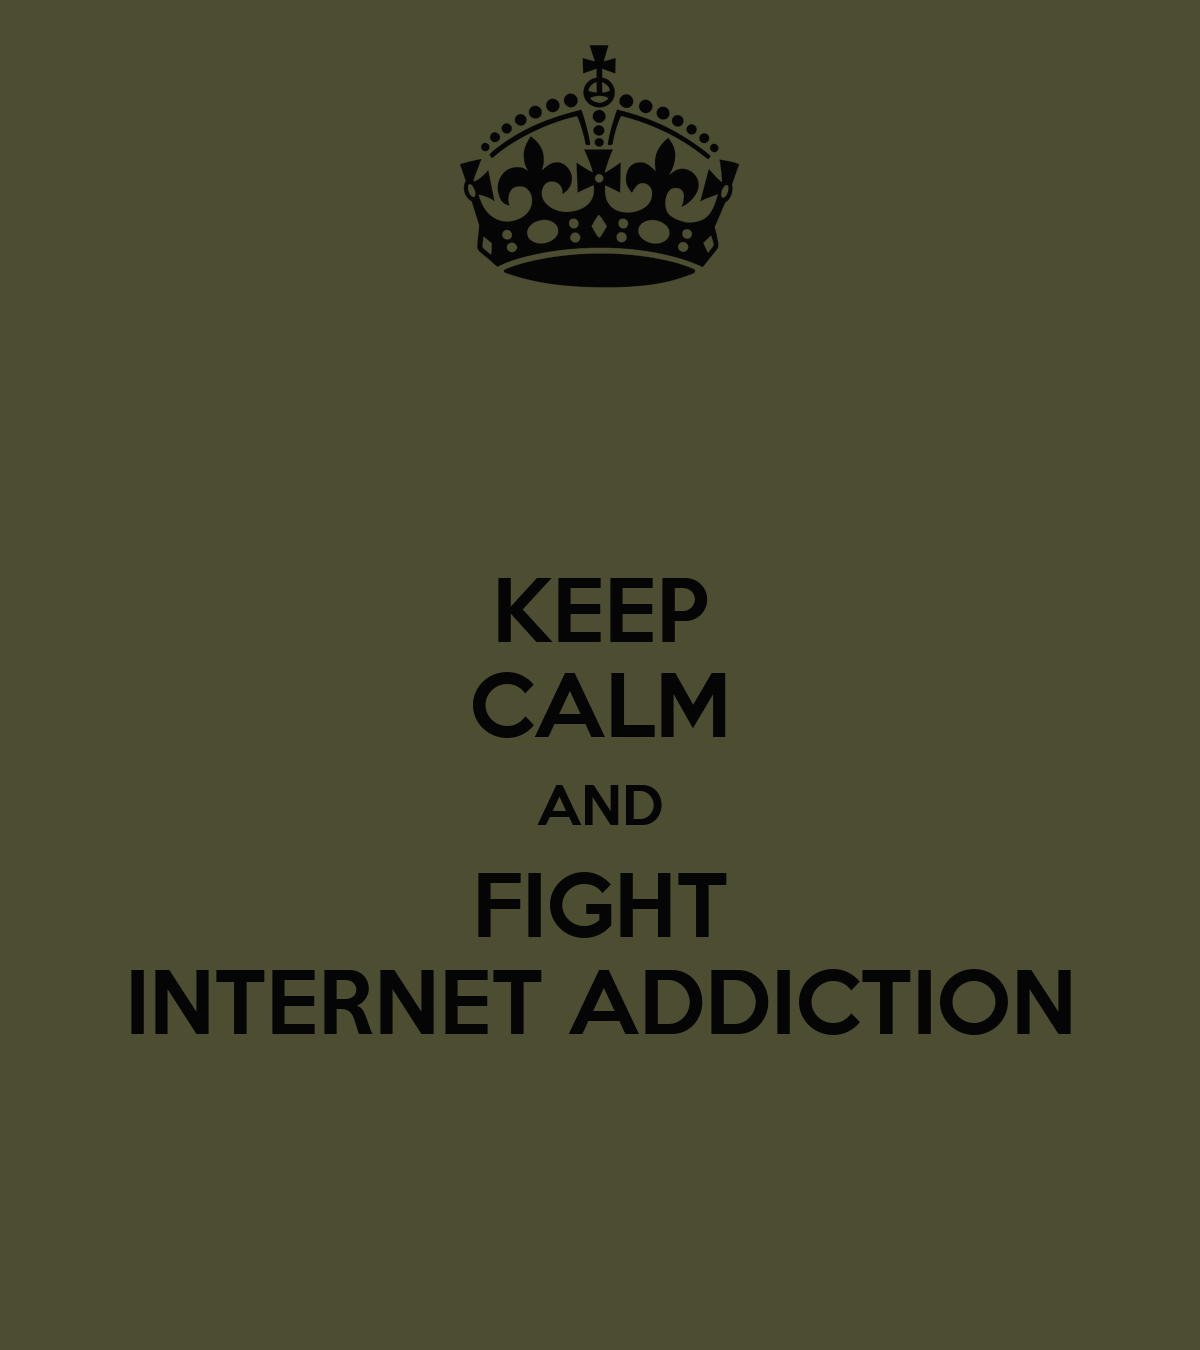 KEEP CALM AND FIGHT INTERNET ADDICTION Poster   Ank   Keep ...